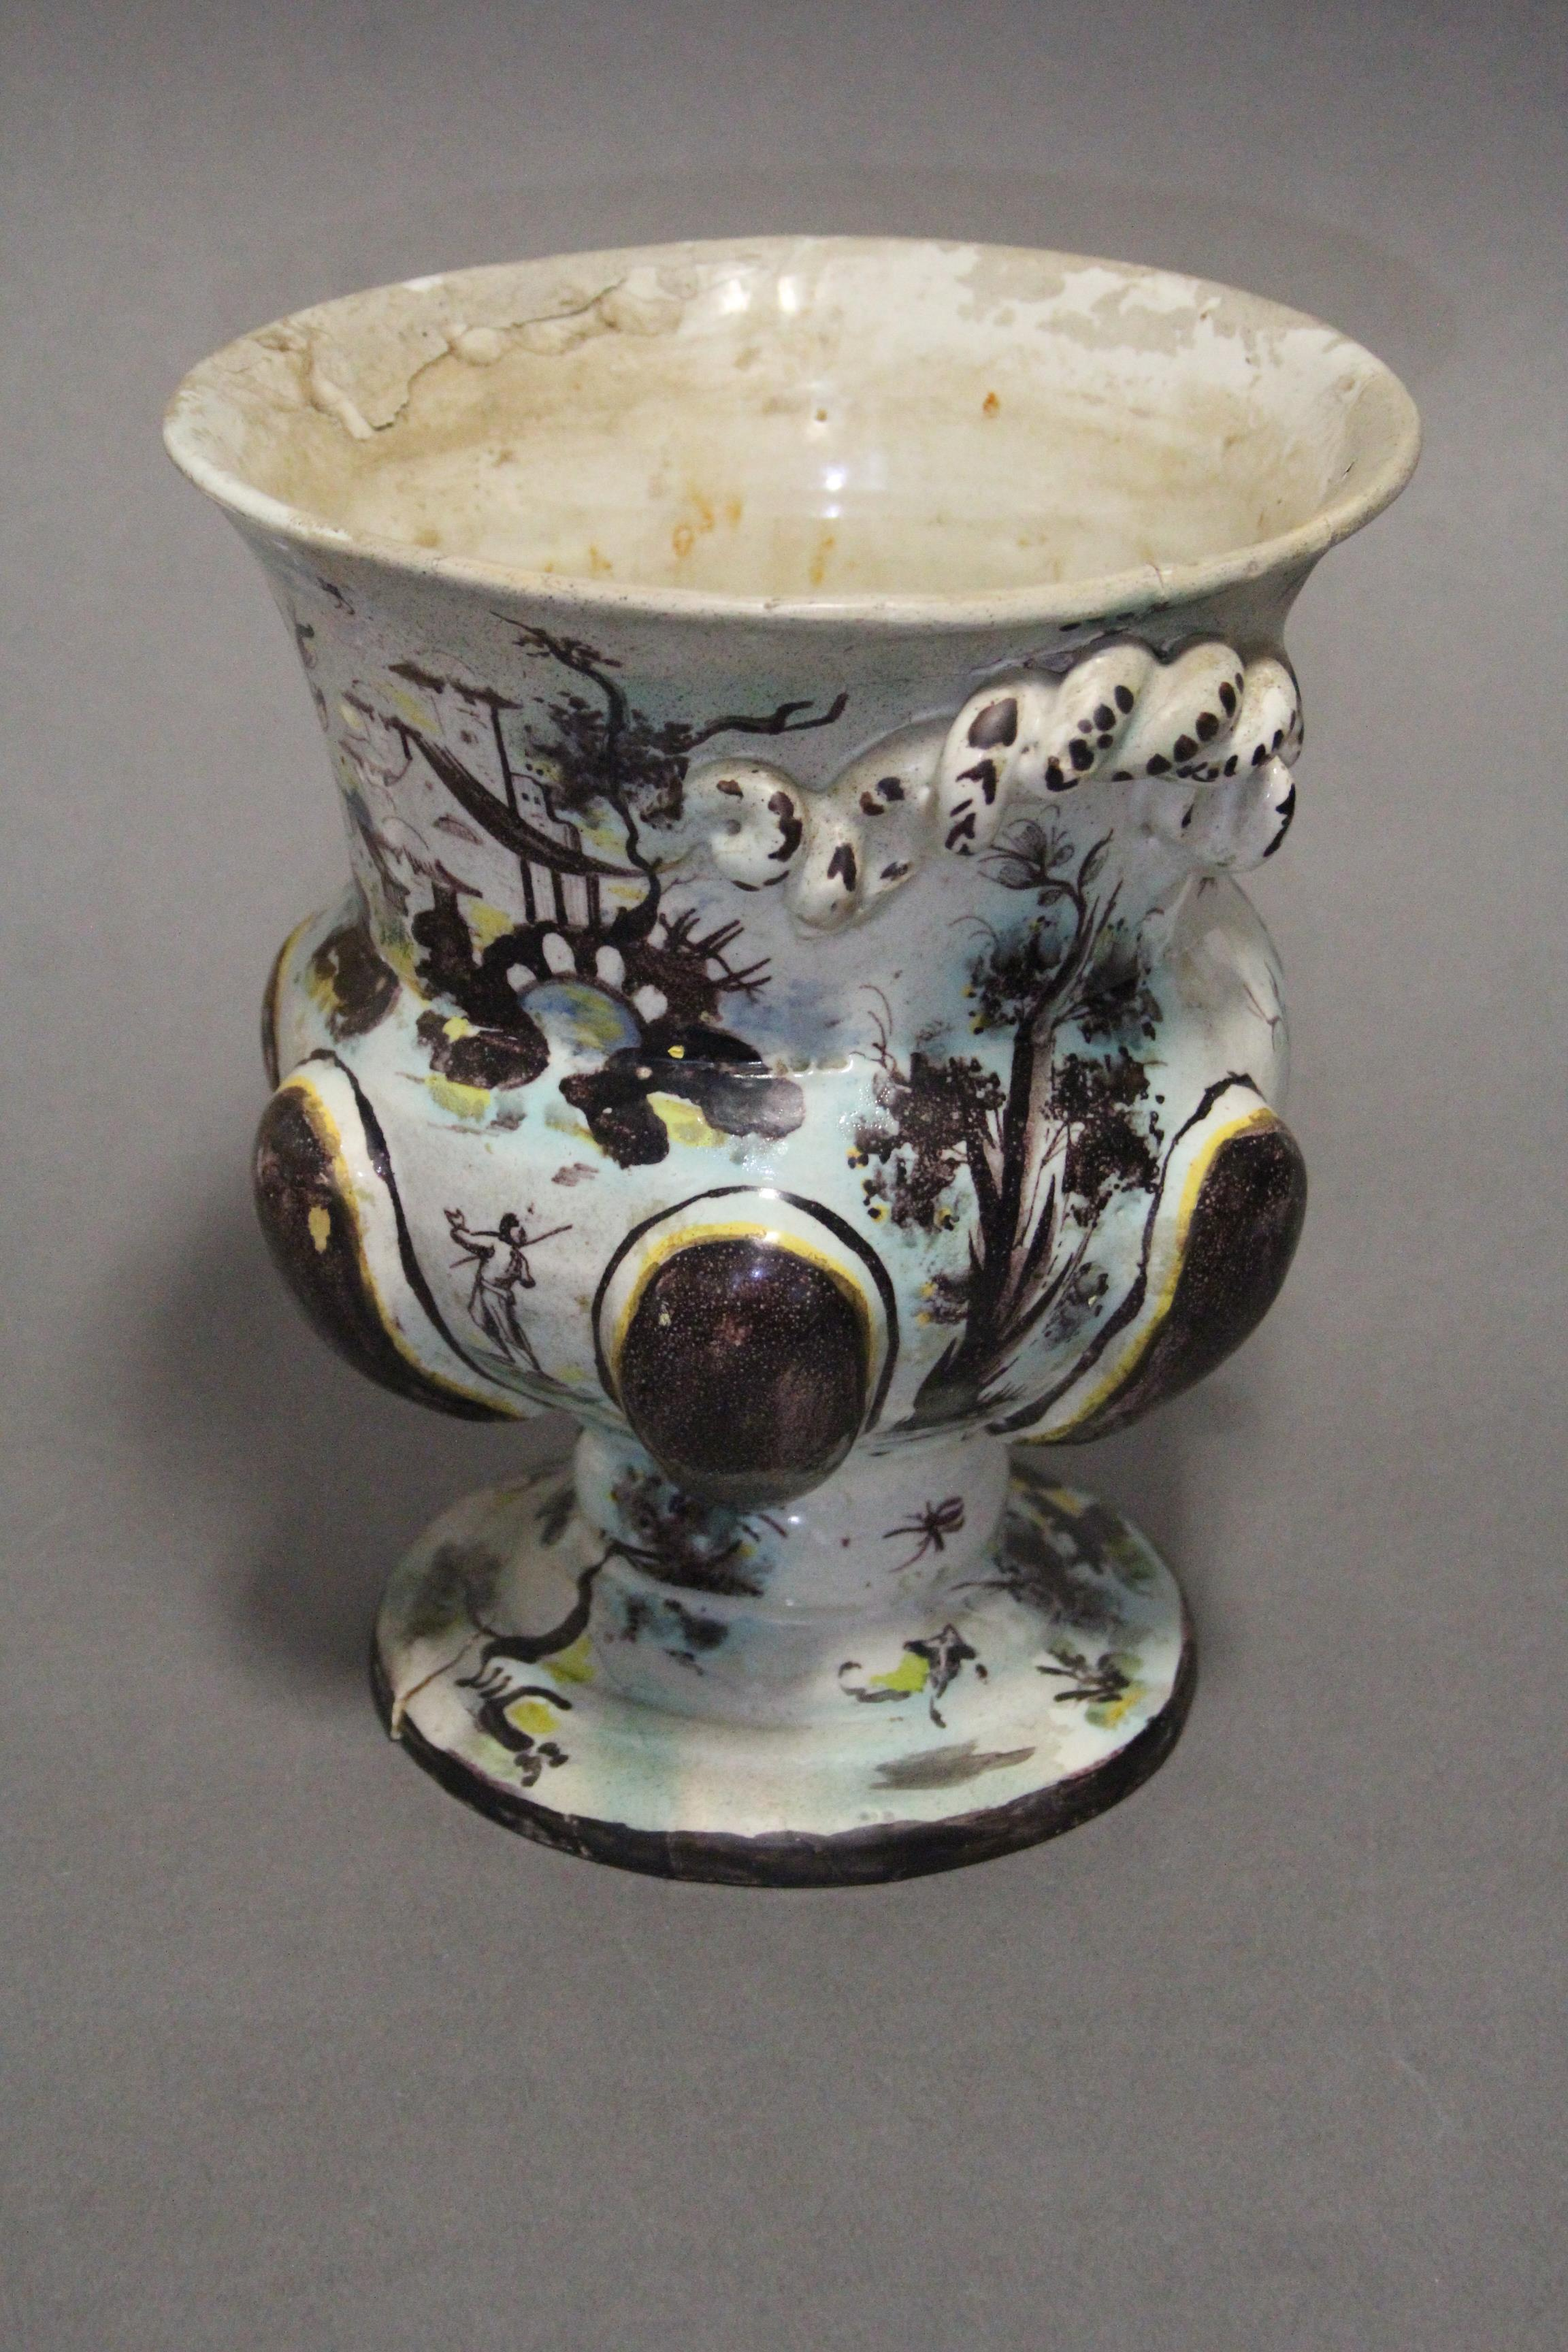 Lot 187 - A 17th/18th century continental faience urn-shaped vase with polychrome decoration of figure scenes,